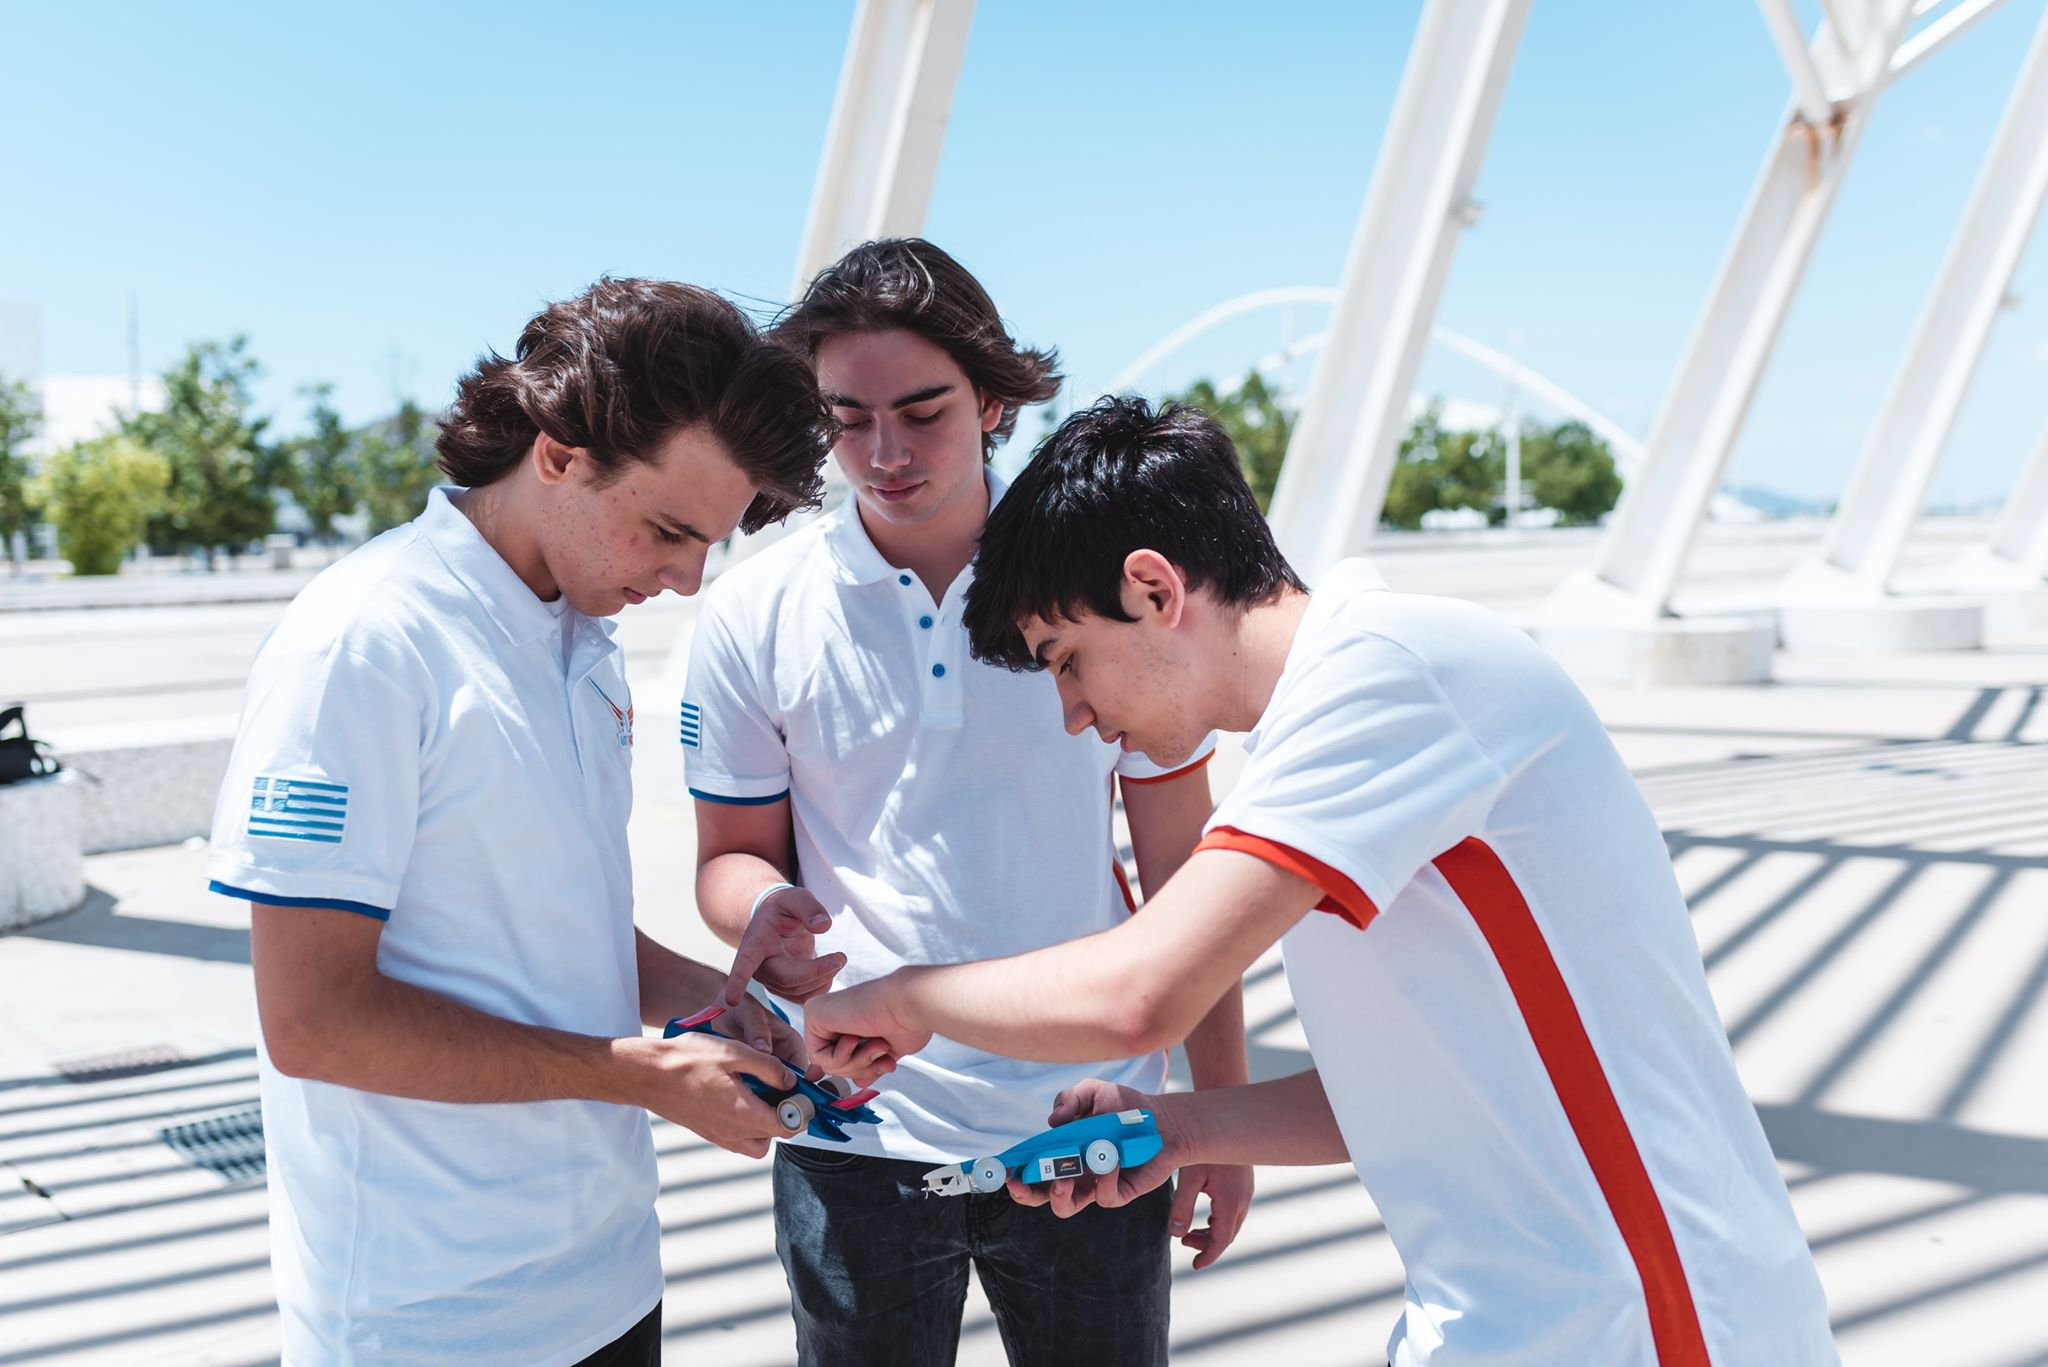 Who we are - AlacrityDynamics is a team created by the AlimoDynamics from the 2nd High School of Alimos and the Alacrity Team from the Erasmios Greek And German School that participates in the 2019 Finals of the F1 in Schools contest. Our team consists of 8 basic and 13 supportive members from Greece. Collaboration, dedication and innovation are the three elements that deifne our team.